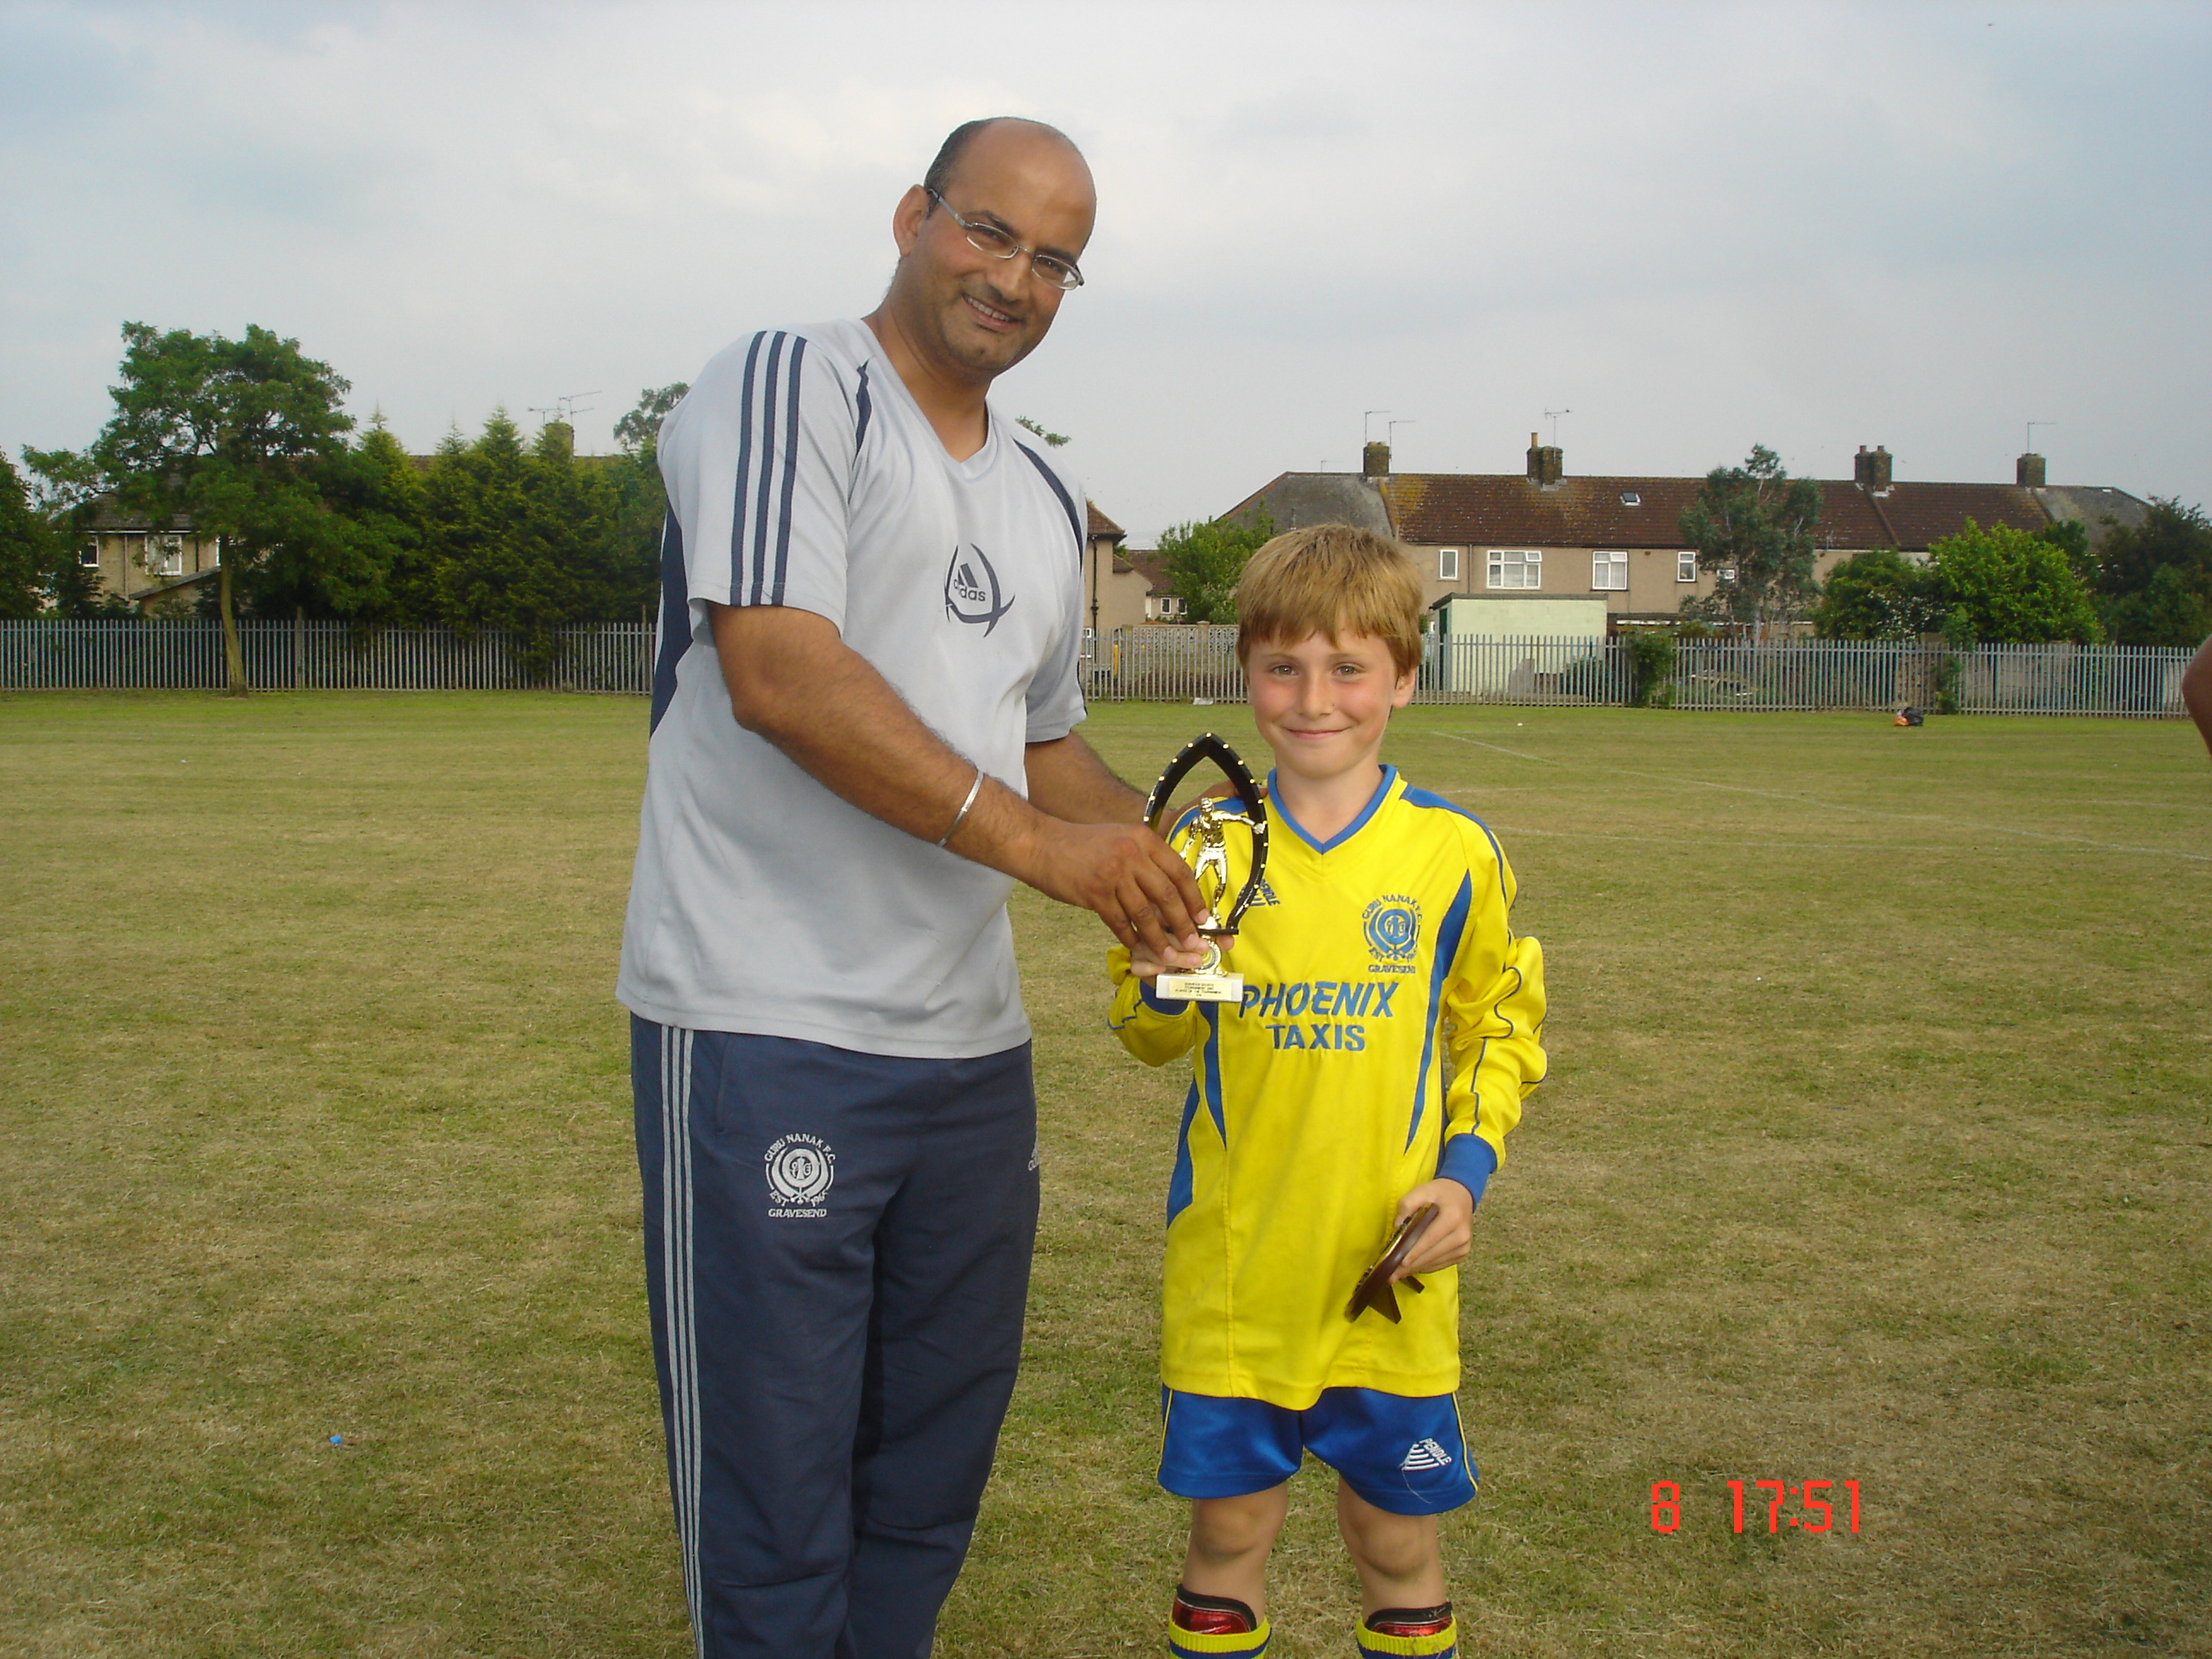 U9s Barking 2007 player of tournament - Alex Fialho